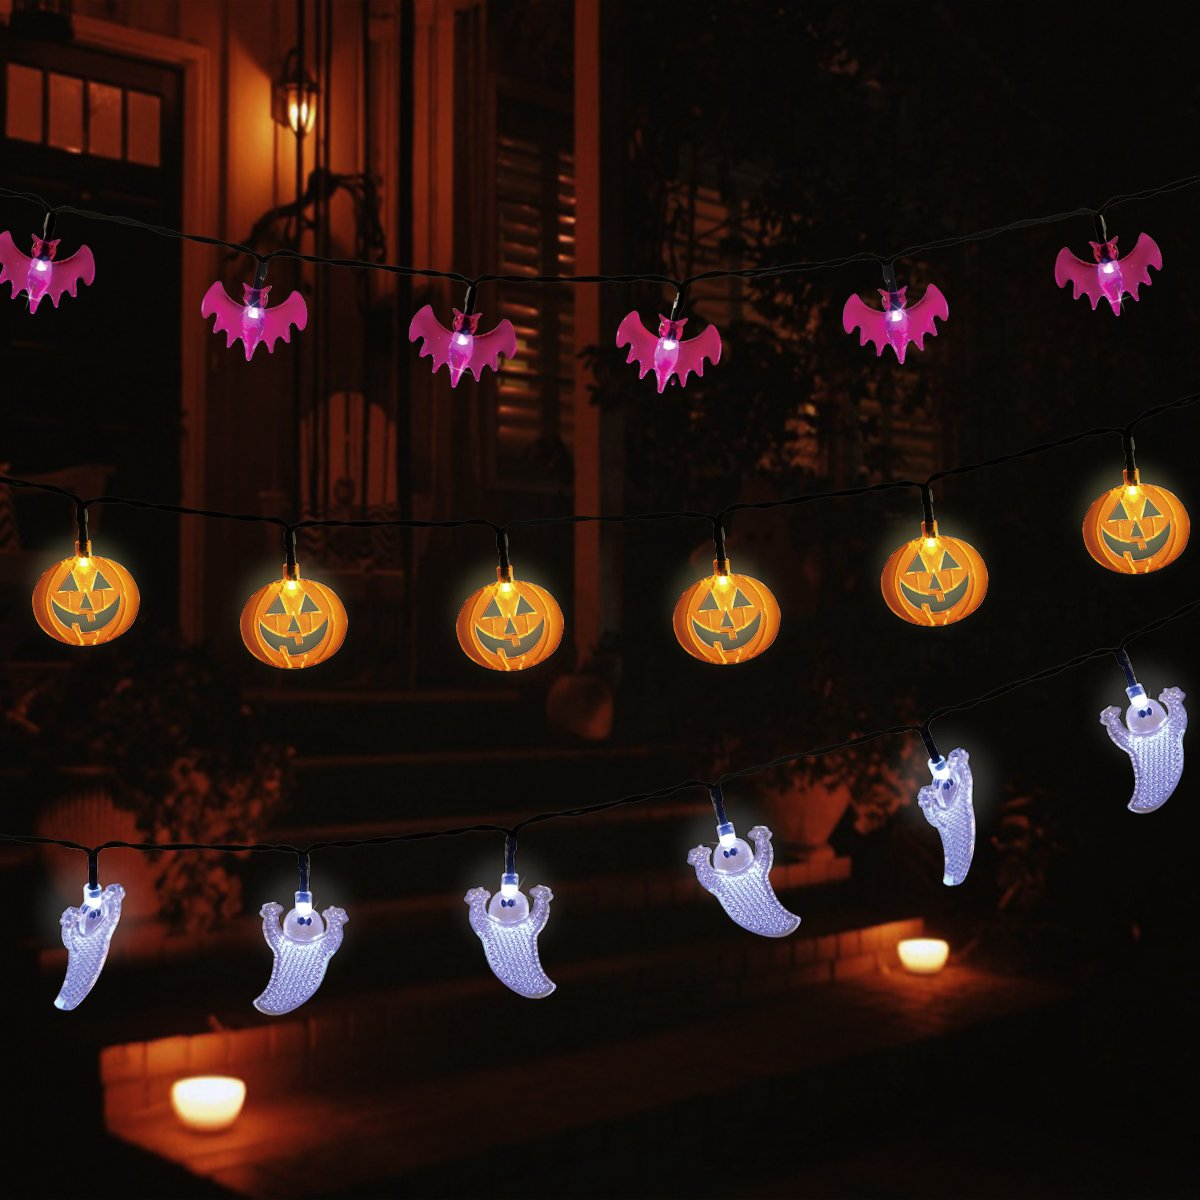 Halloween Yard Decoration Scary  YUNLIGHTS Halloween String Lights, Set of 3 Strings with 30 LED Lights Each - White Ghosts, Orange Jack O'Lanterns, Purple Bats